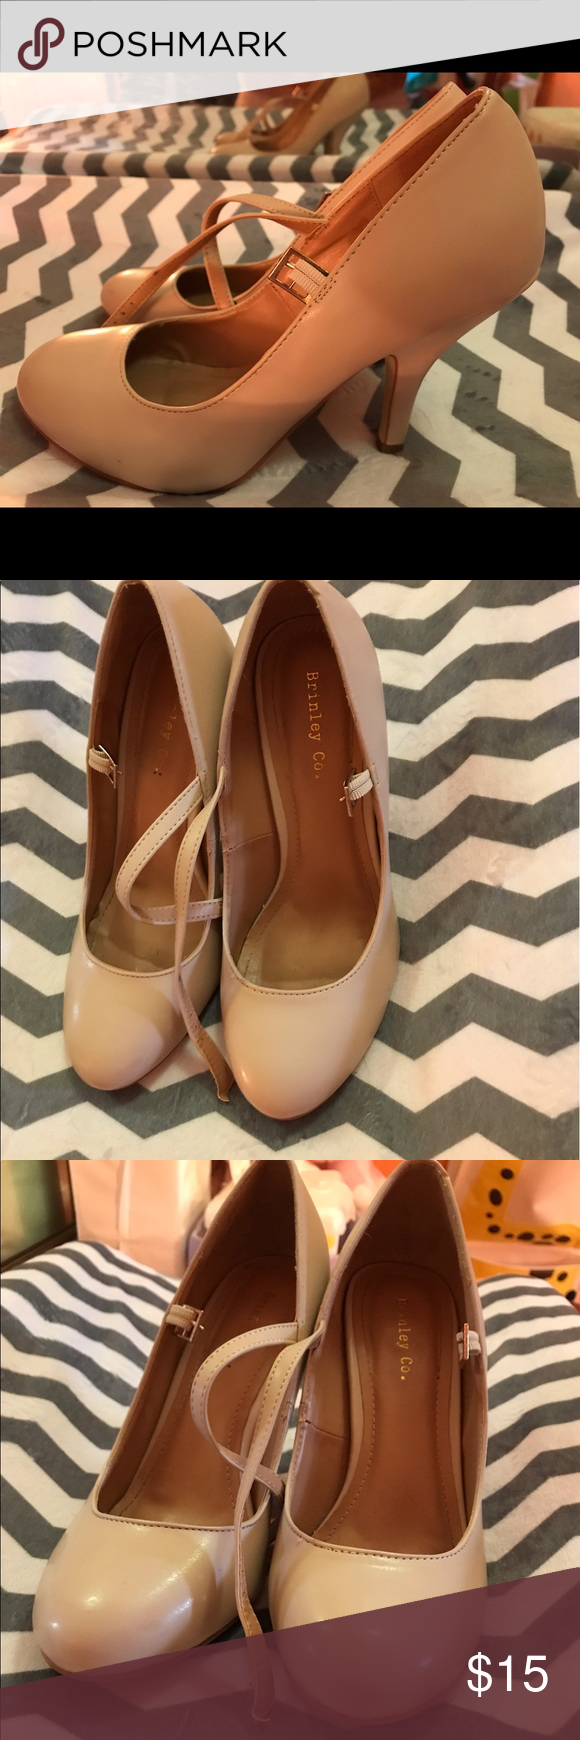 Nude Mary Jane pumps Nude matte Mary Jane pumps, very cute and comfortable minor wear as pictured but great looking shoes brinely Shoes Heels